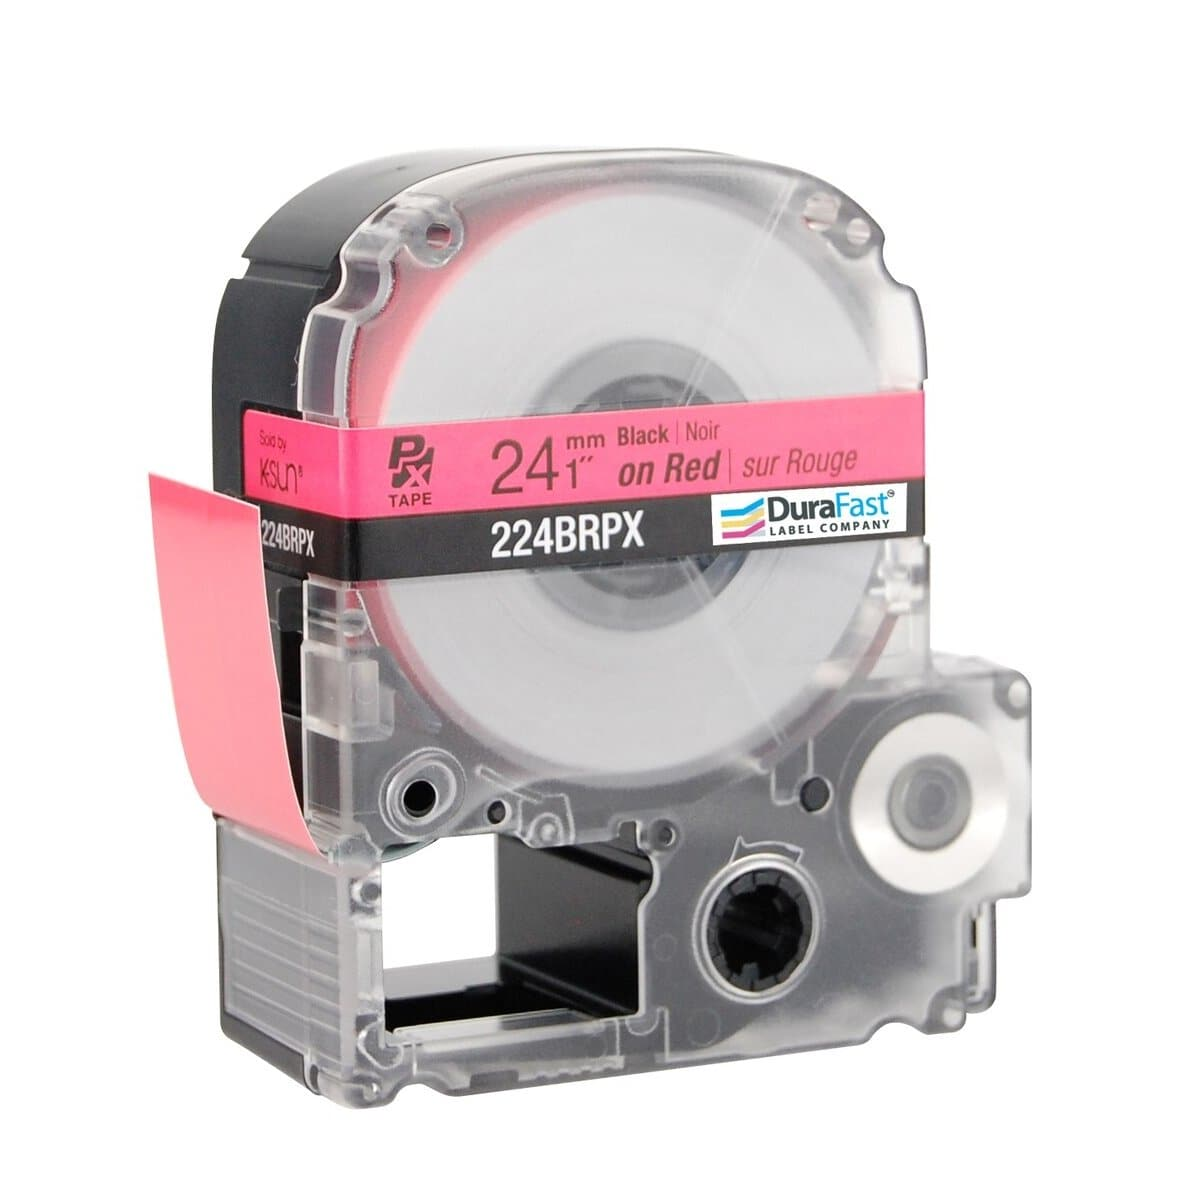 Epson LABELWORKS PX 24mm 224BRPX Tape, Black on Red